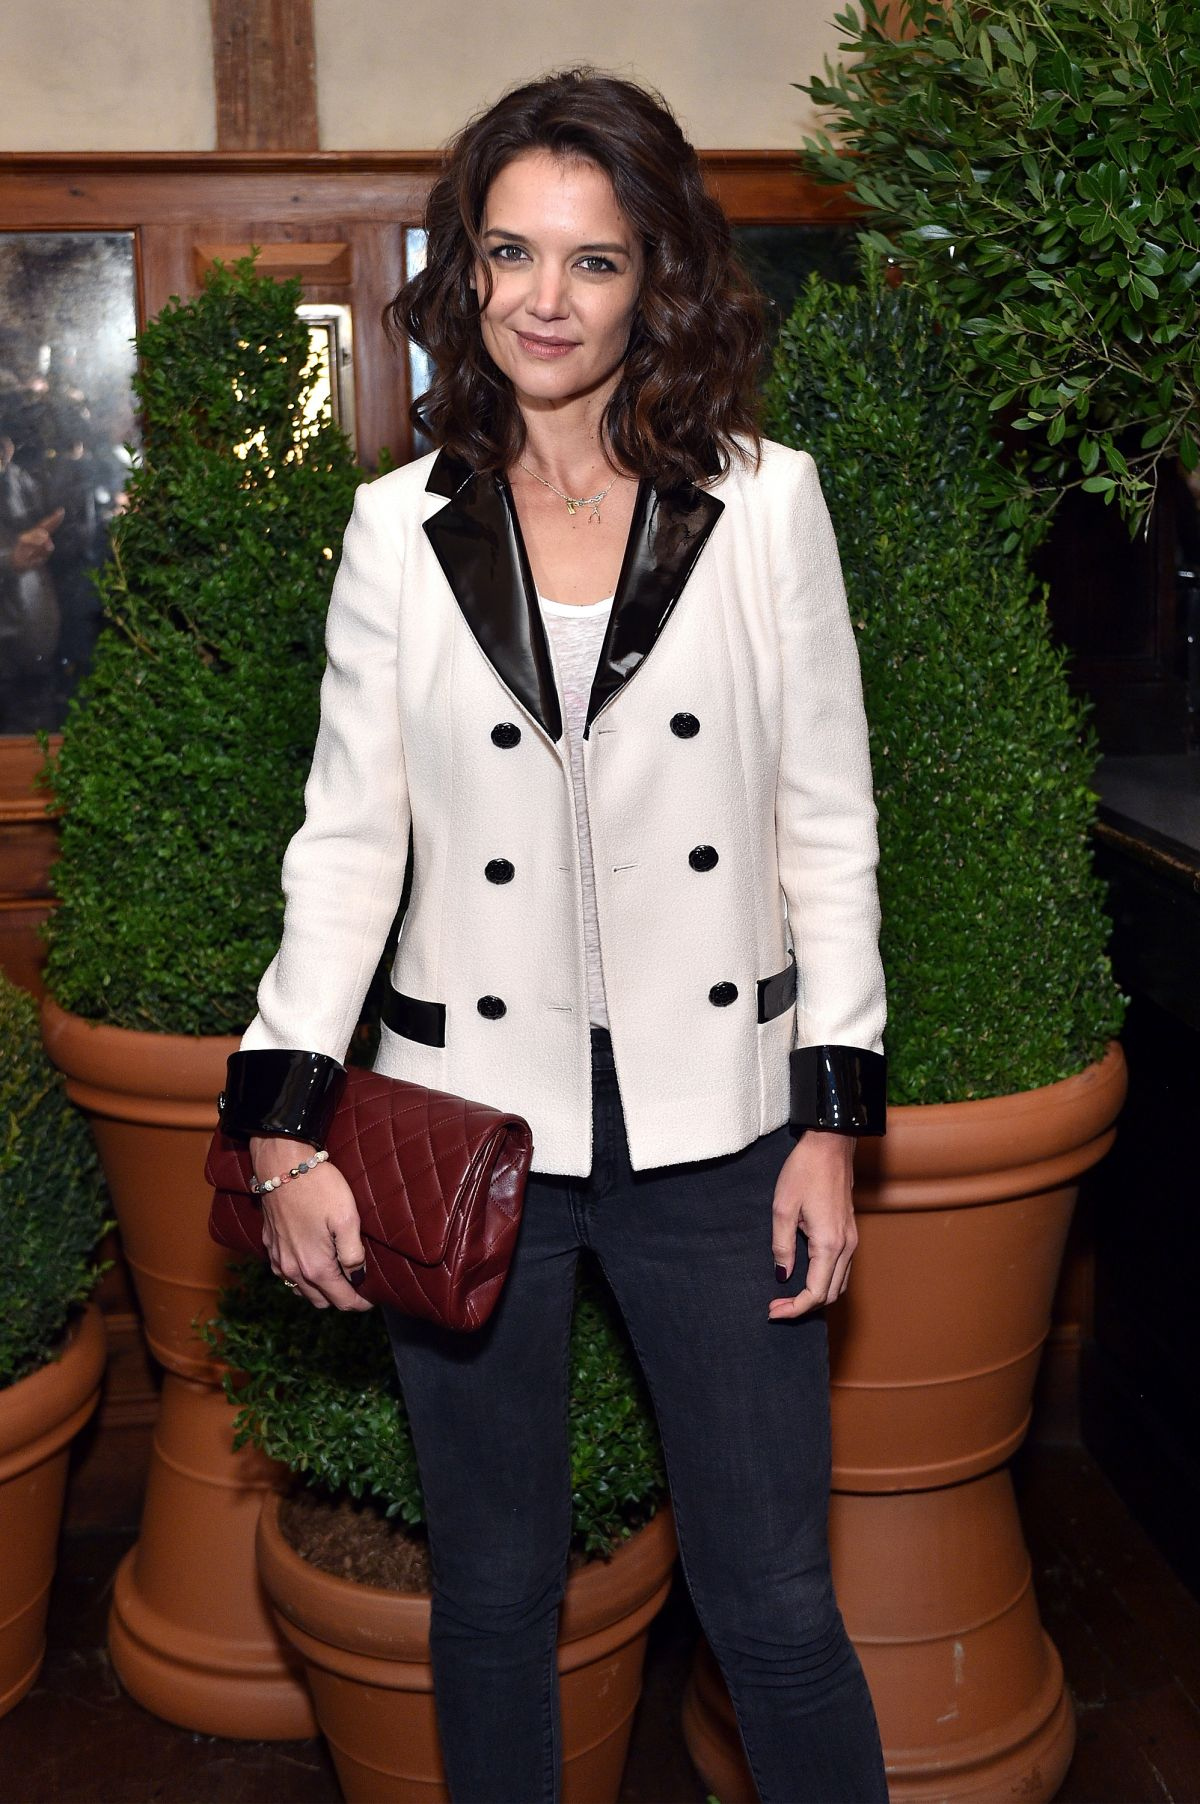 KATIE HOLMES at Through Her Lens: The Tribeca Chanel Women's Filmmaker Program Inaugural Luncheon in New York 10/26/2015